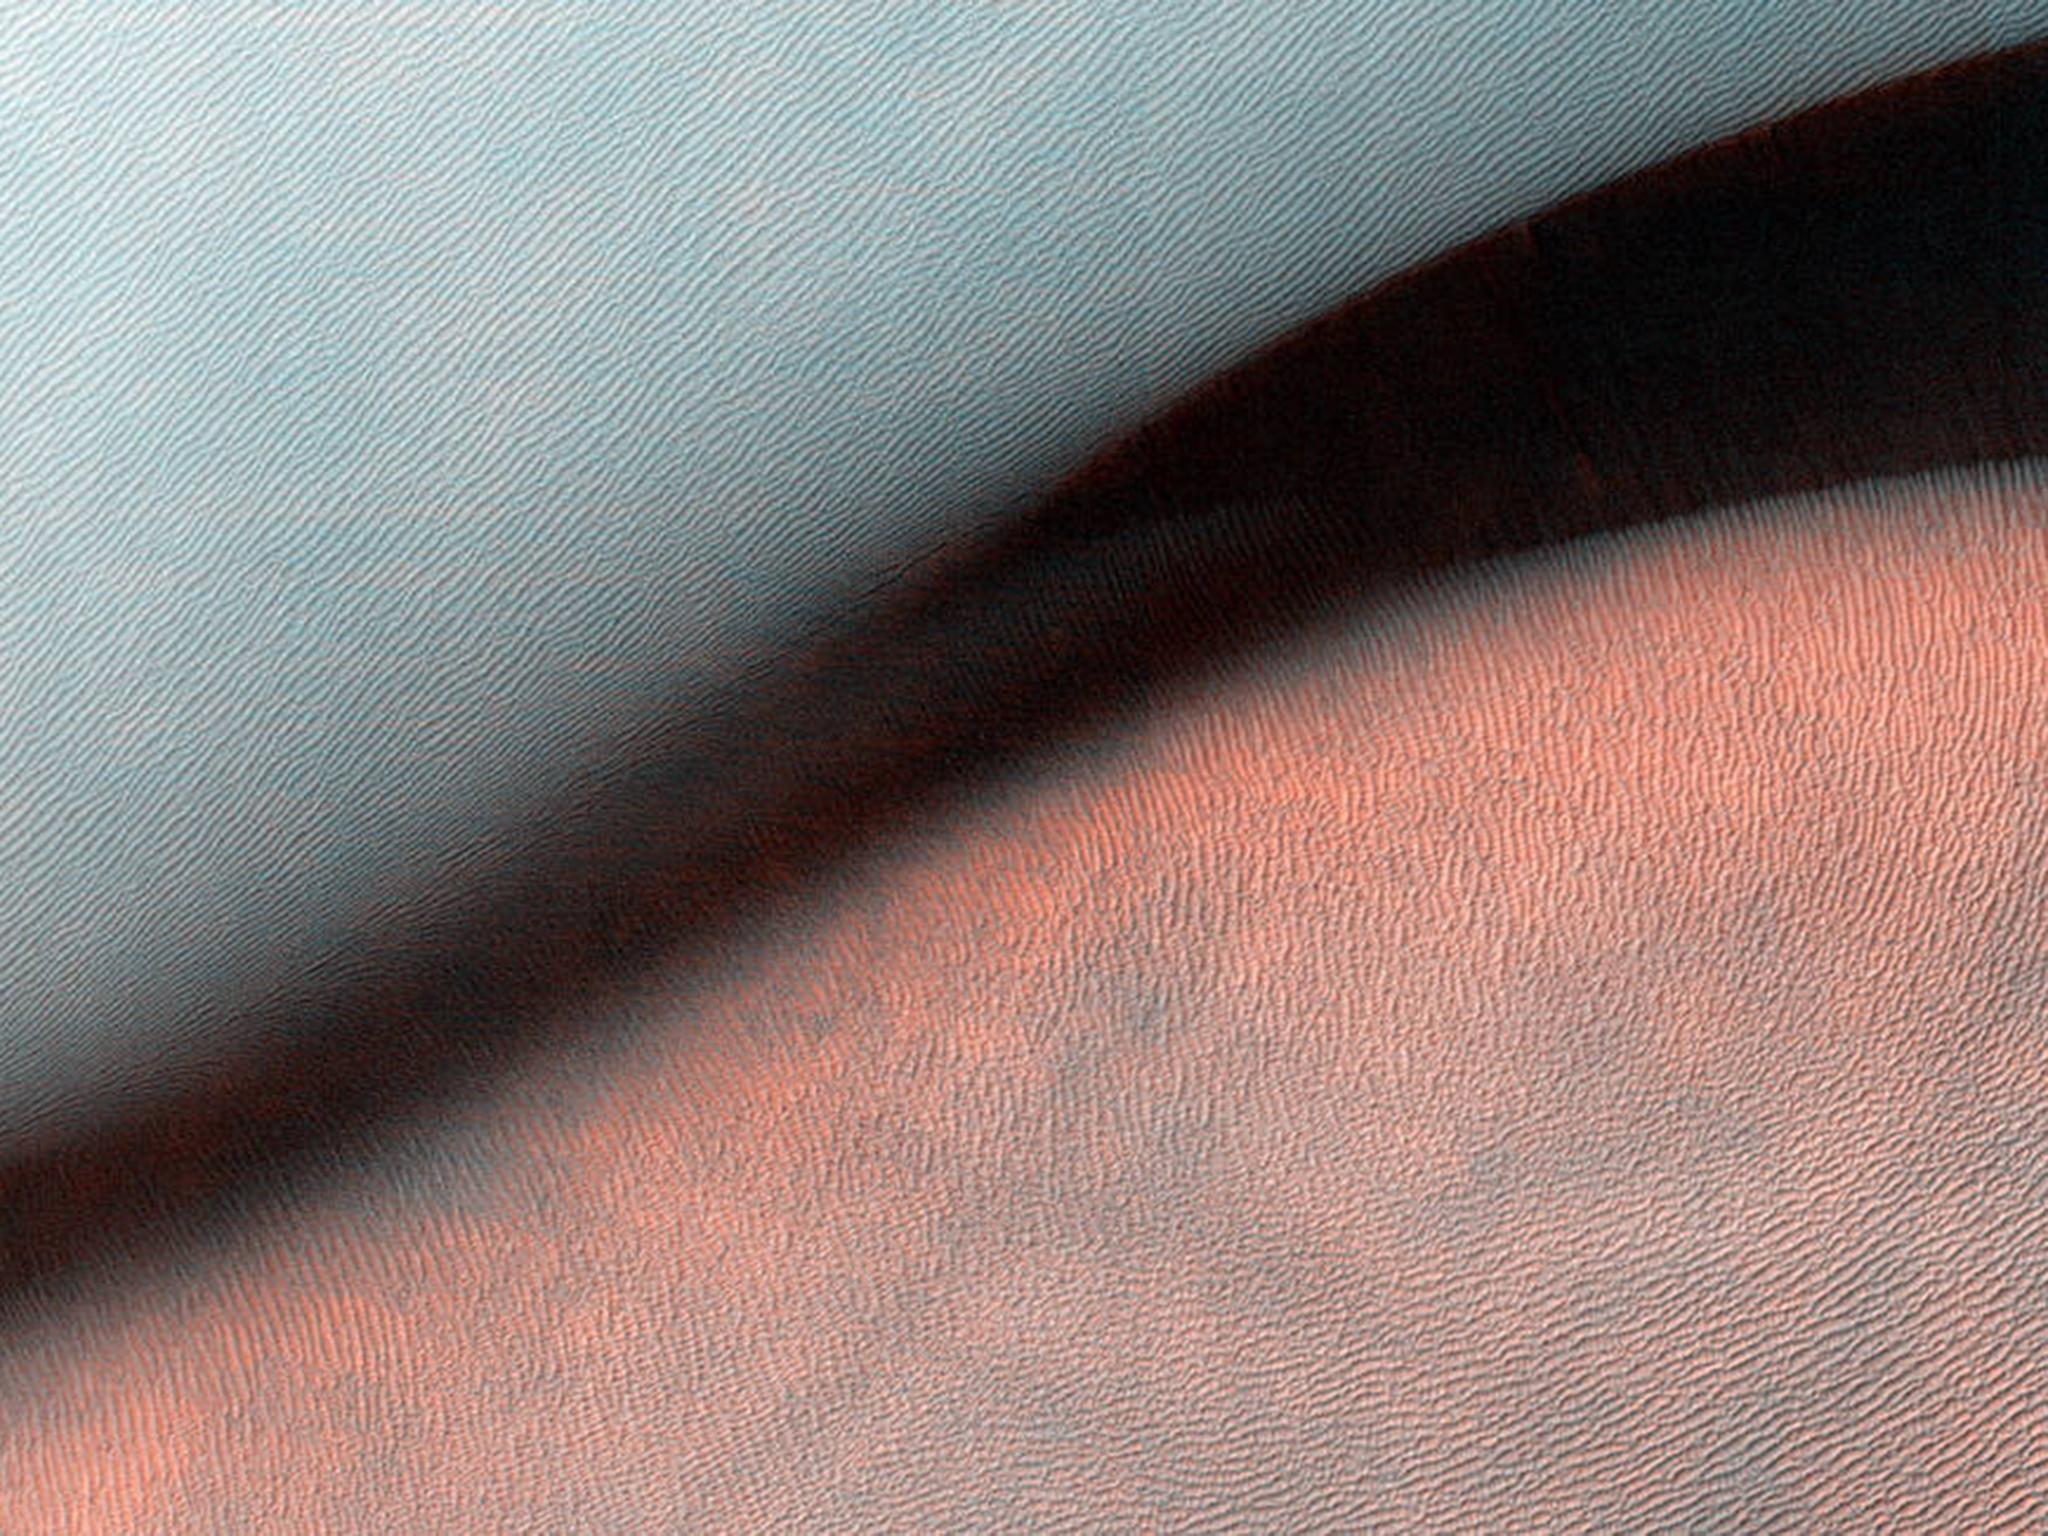 Giant Landform on Mars